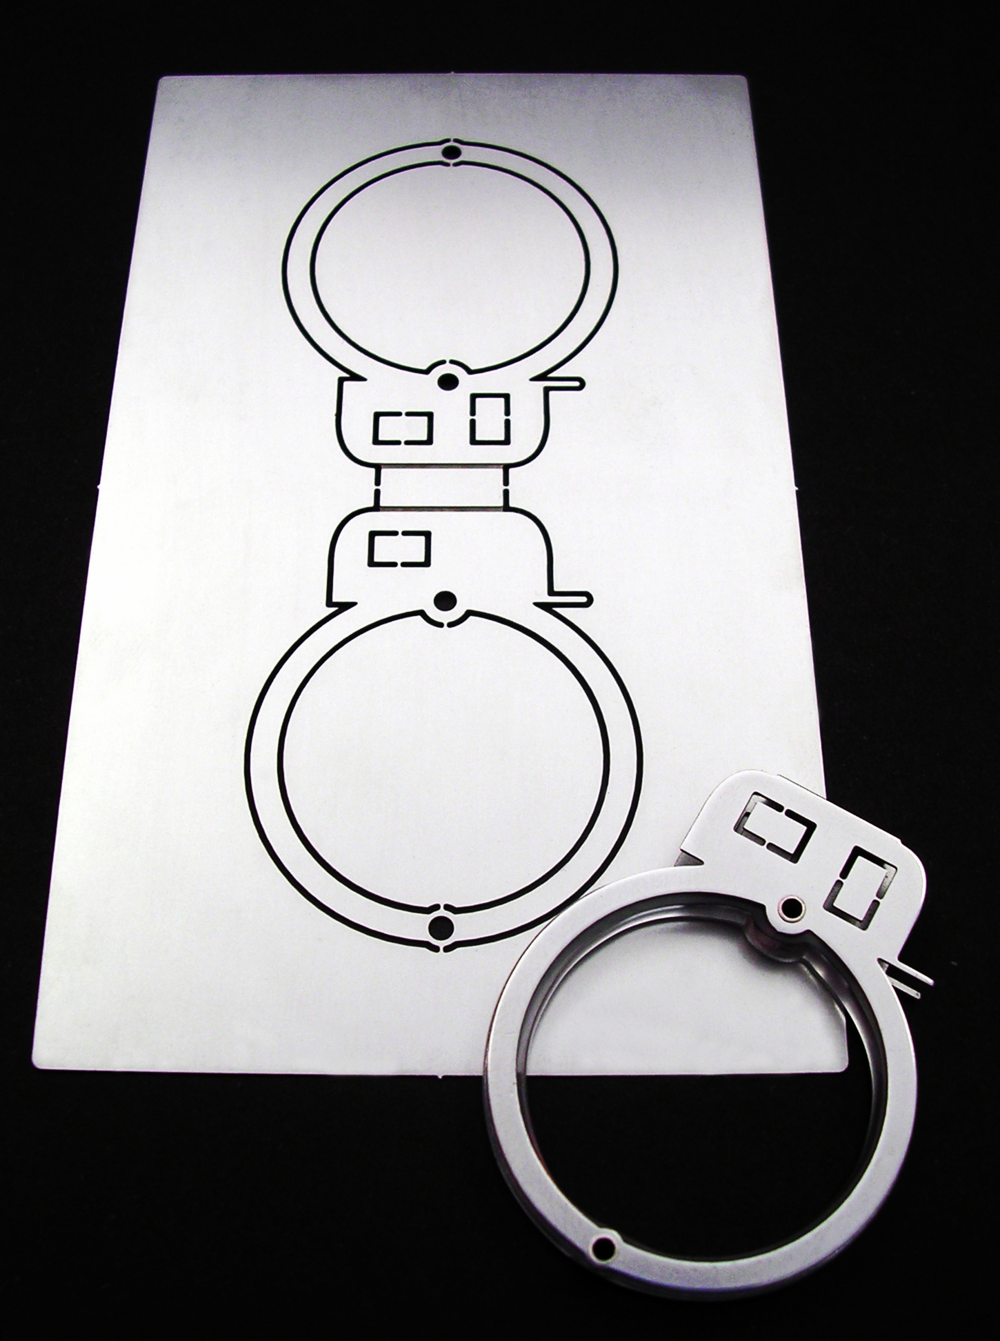 Caravan Card Ring Set  | 2005 | Stainless Steel, Acrylic |